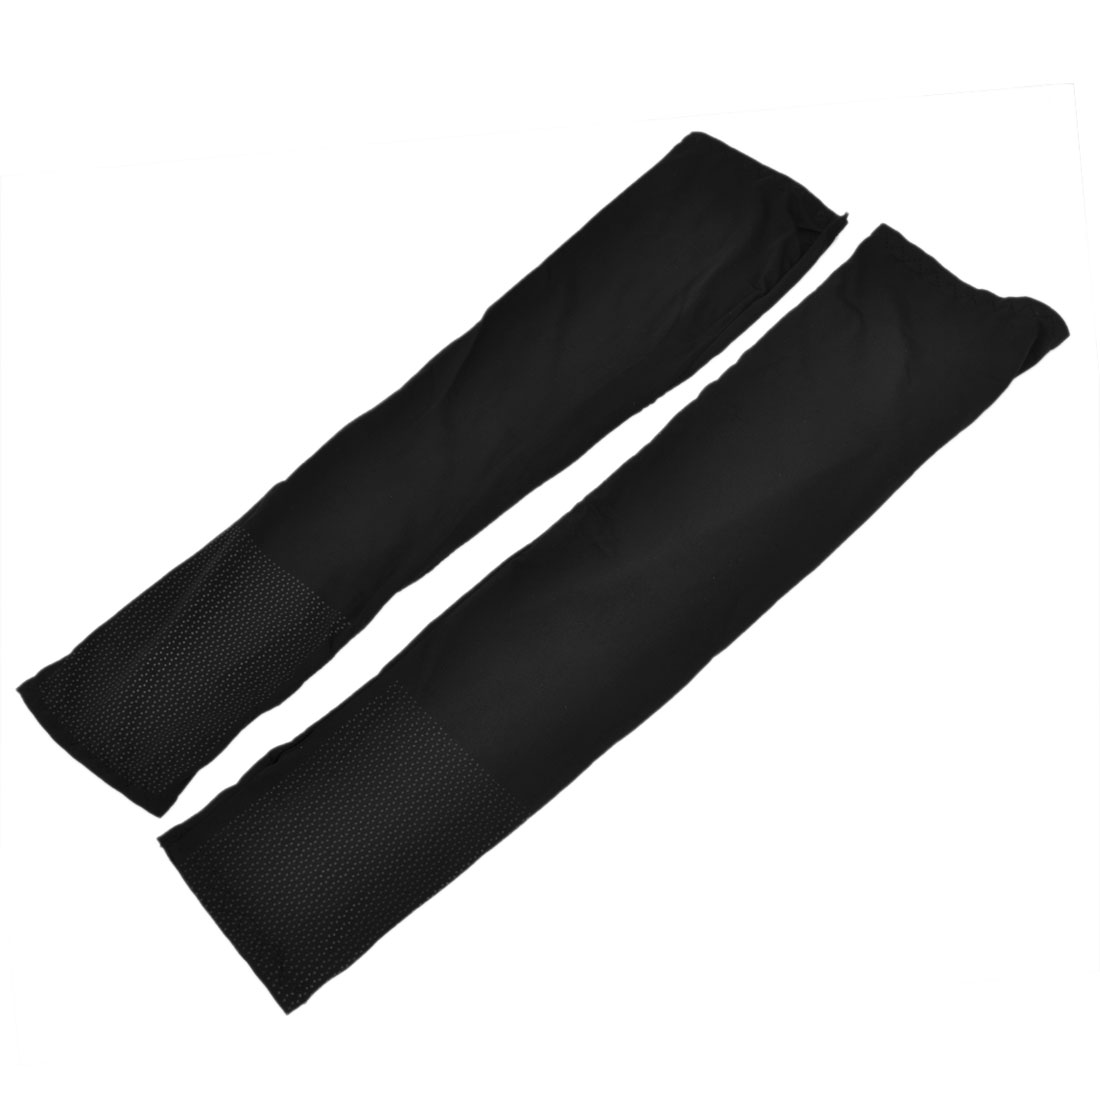 Woman Elastic Outdoor Activity Golf Sun Protection Arm Sleeves Black Pair